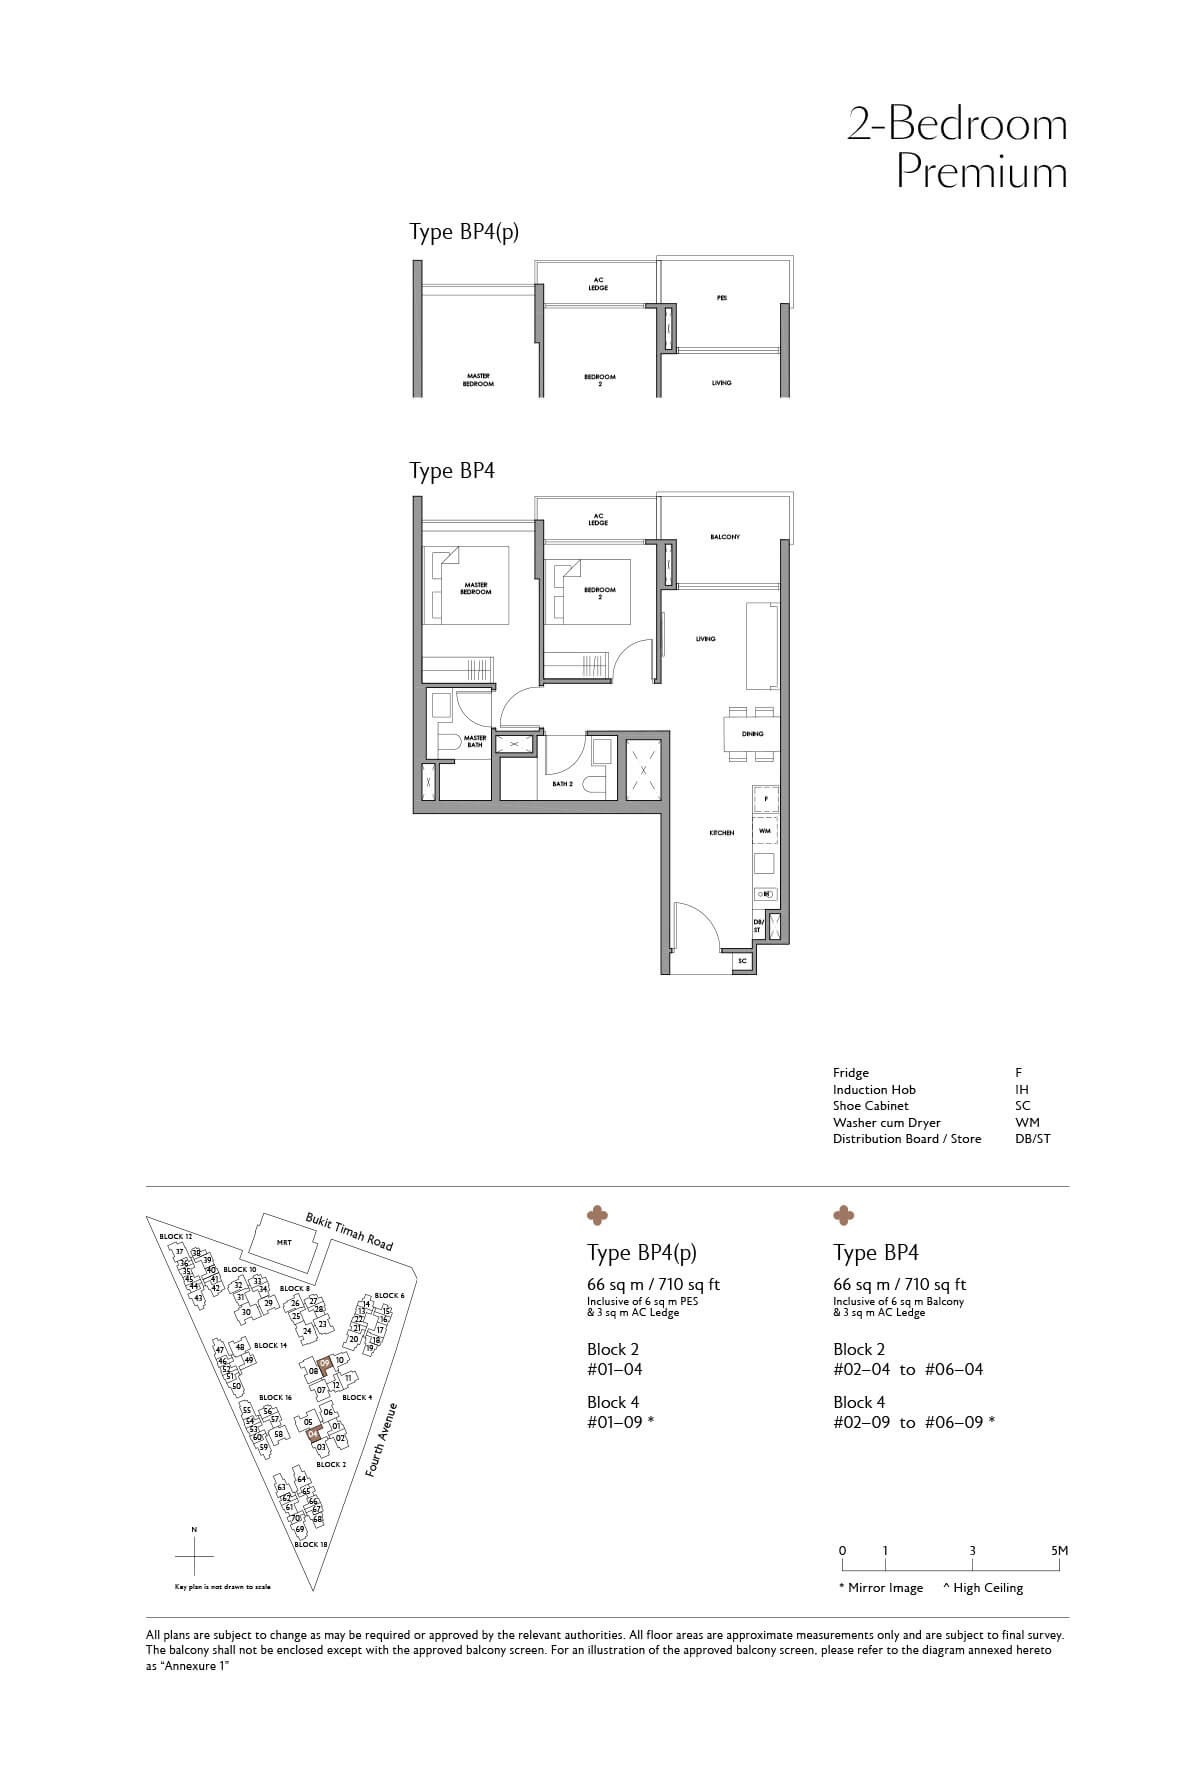 Fourth Avenue Residences Floor Plan 2 Bedroom Premium Type BP4